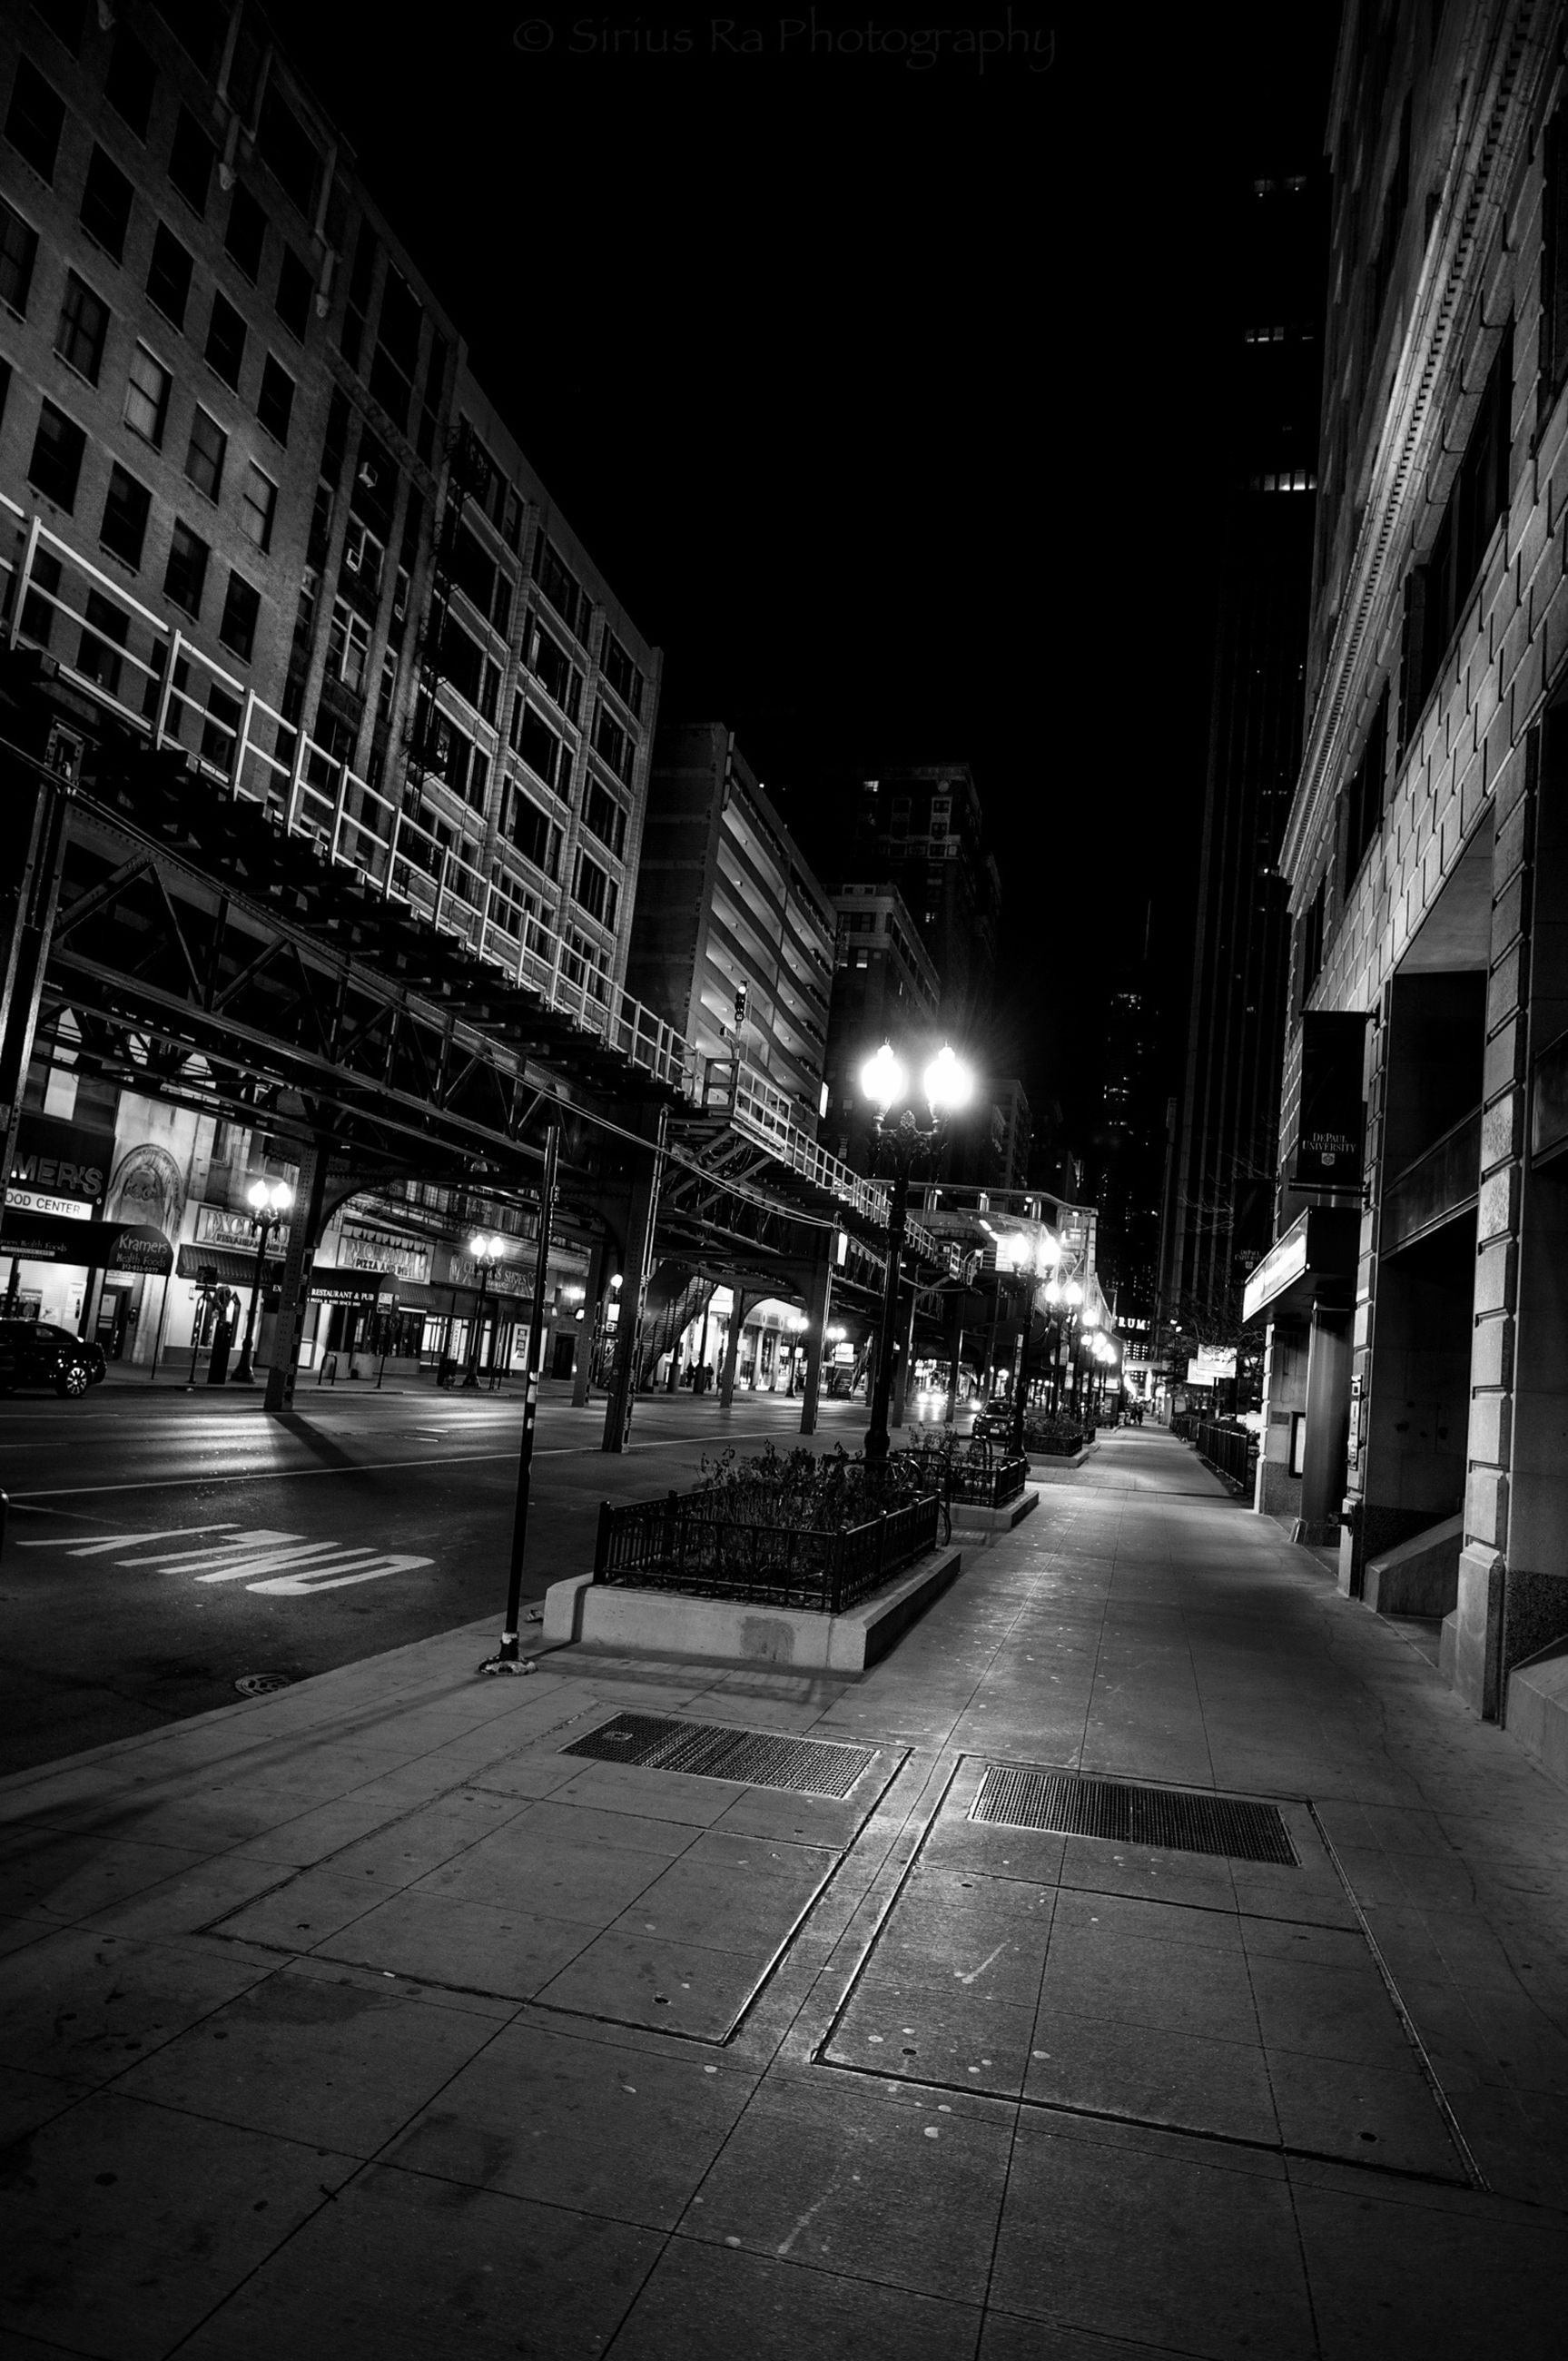 night, building exterior, architecture, built structure, illuminated, street, city, the way forward, transportation, road, street light, city life, city street, road marking, building, diminishing perspective, vanishing point, lighting equipment, outdoors, car